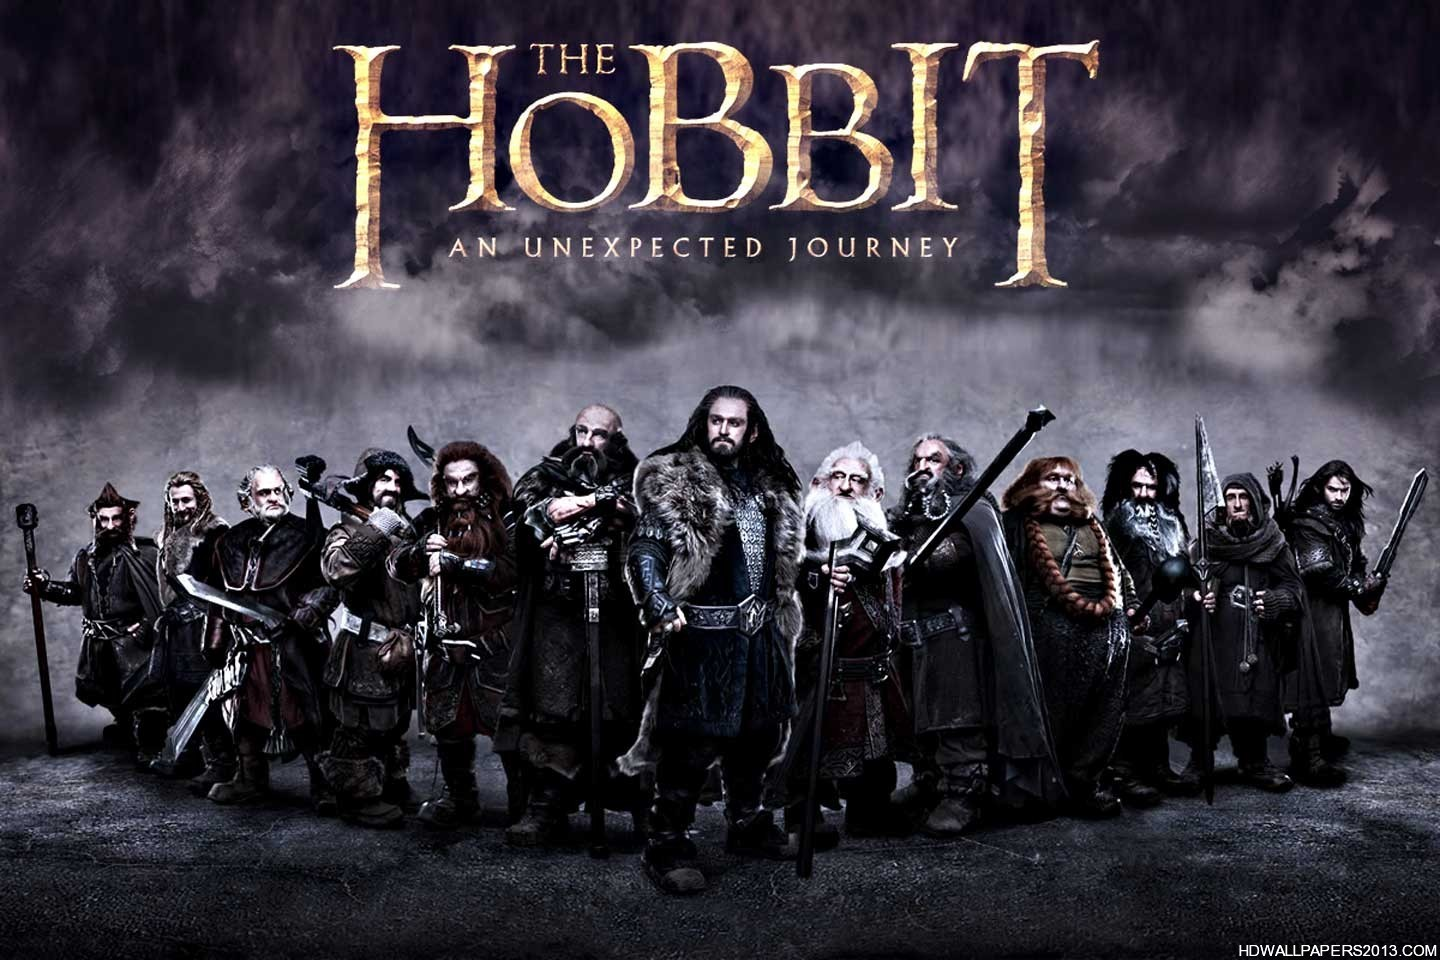 The Hobbit Movie High Definition Wallpapers High 1440x960